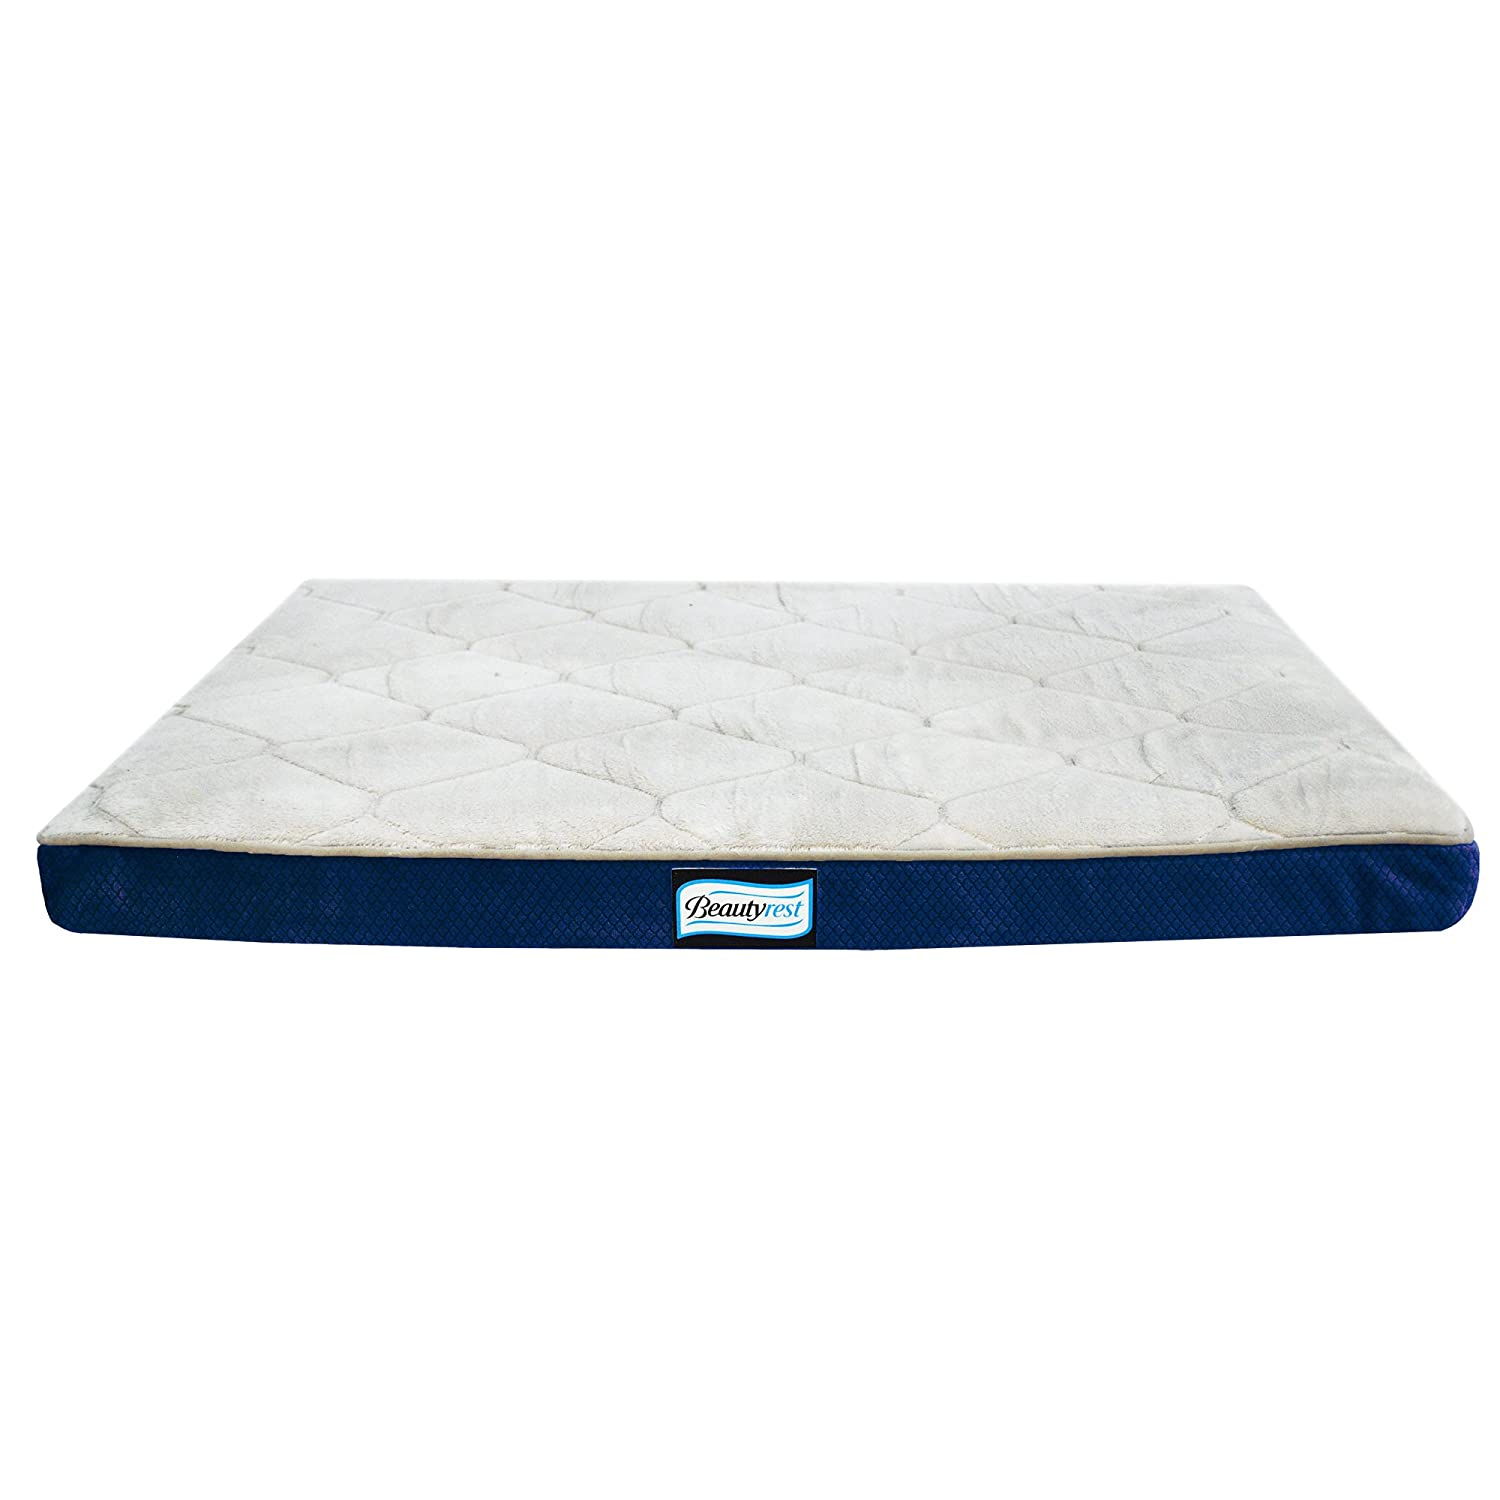 rest pier wid prod false mattress op hei navy silver pillowtop p queen beautyrest sleep beauty simmons plush sharpen